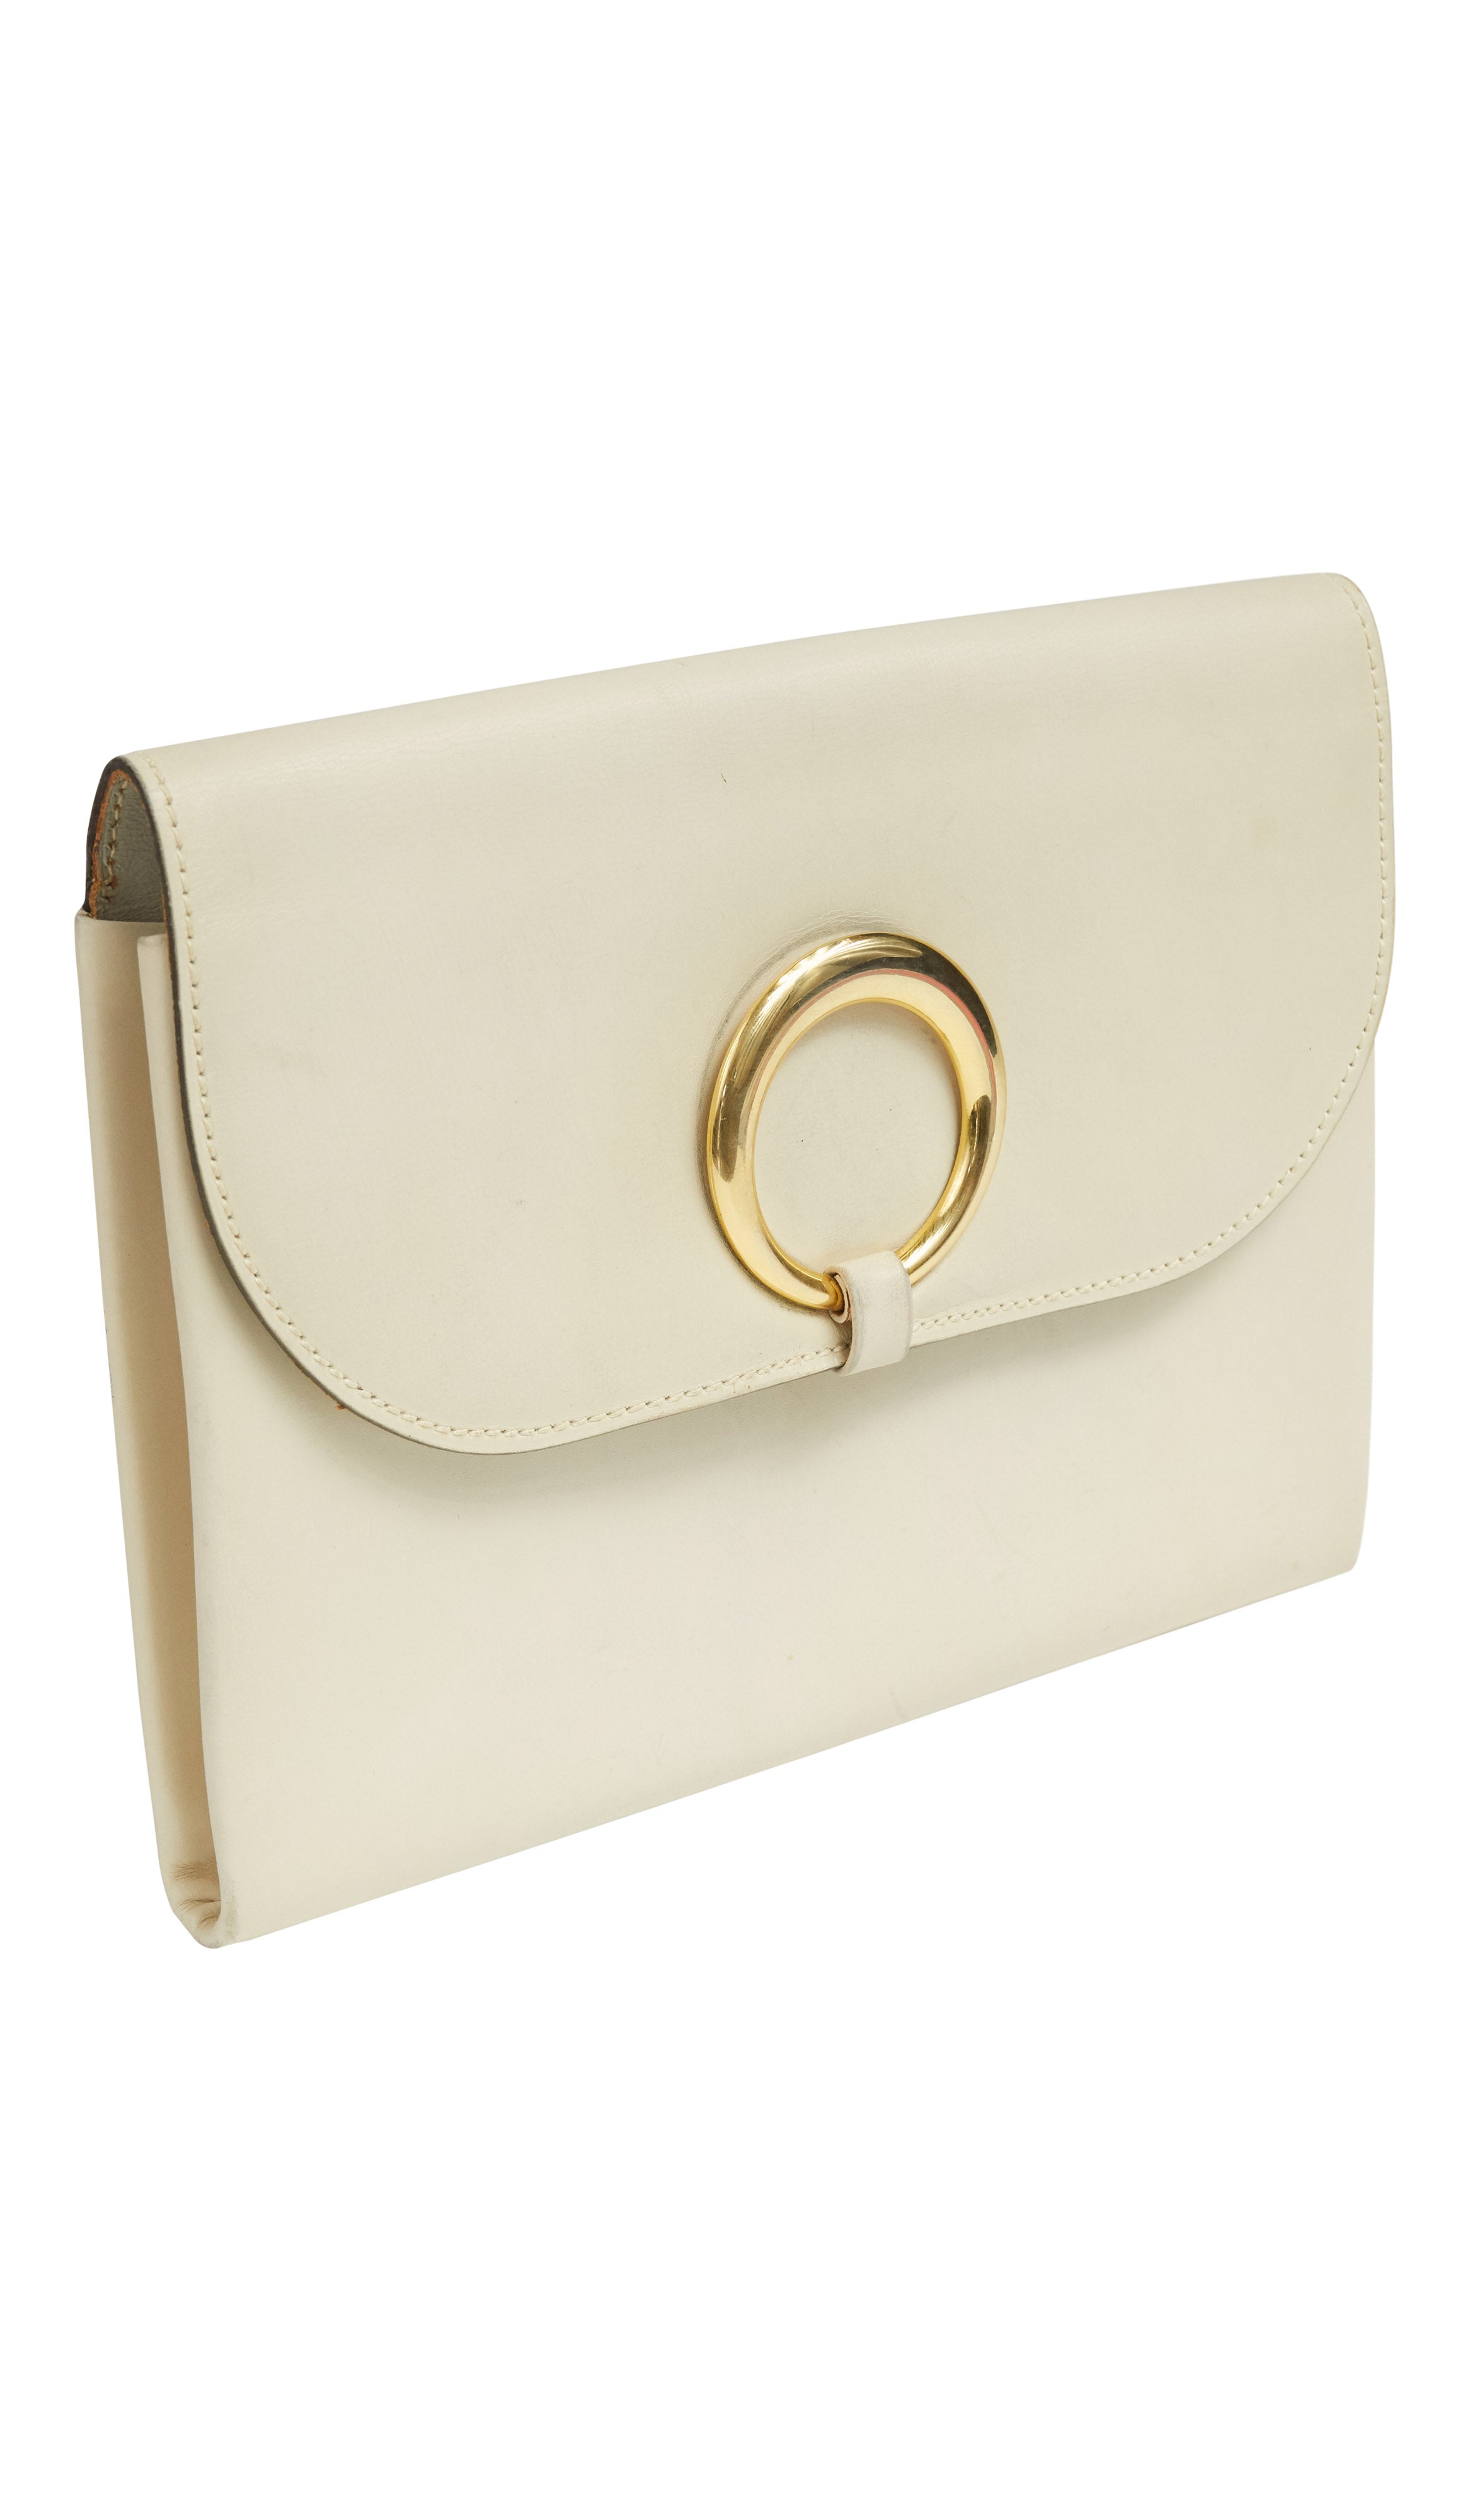 1970s Ivory Genuine Leather Envelope Clutch